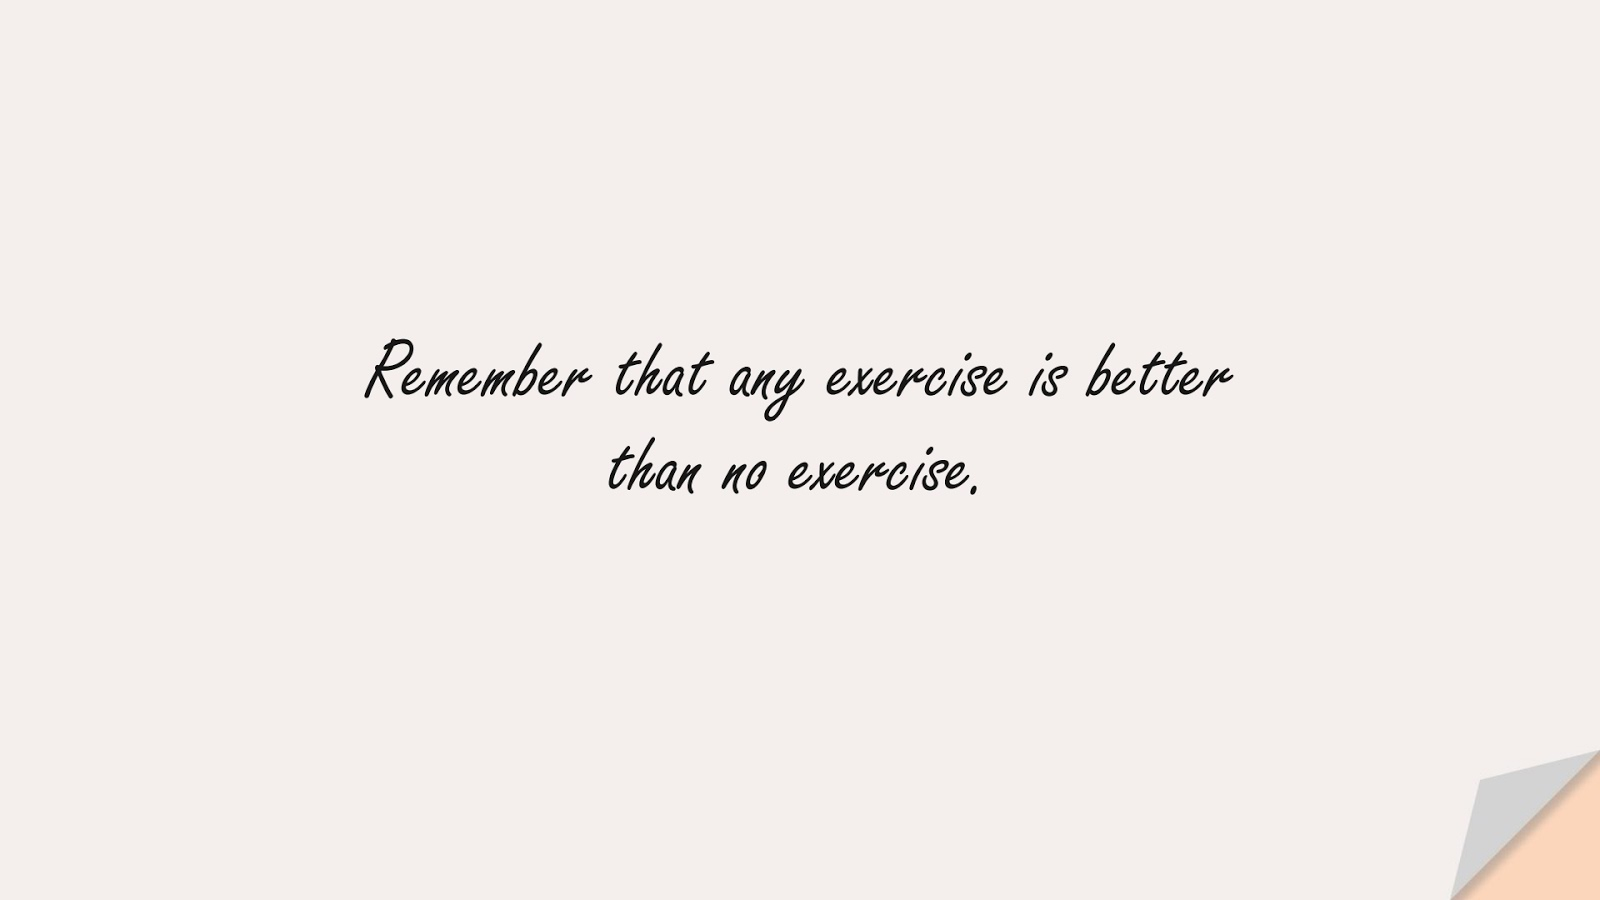 Remember that any exercise is better than no exercise.FALSE